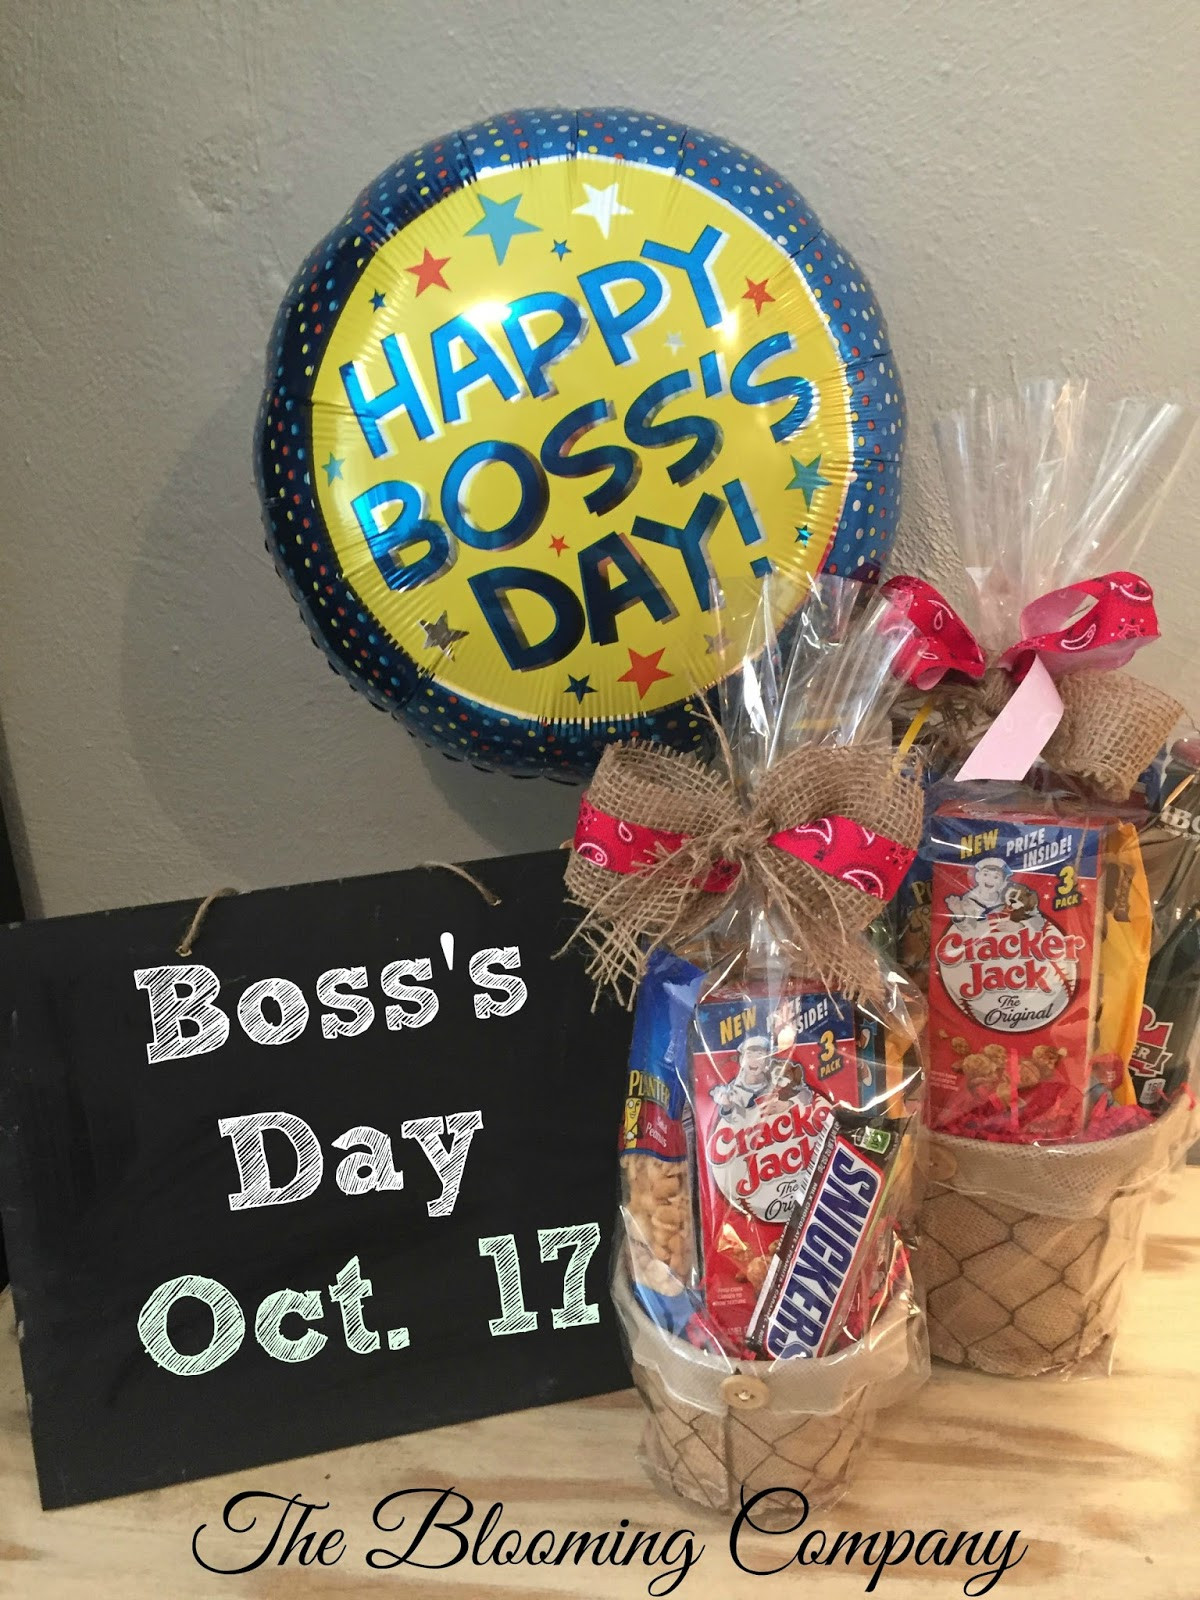 Best ideas about Bosses Day Gift Ideas For Her . Save or Pin The Blooming pany Boss s Day Now.